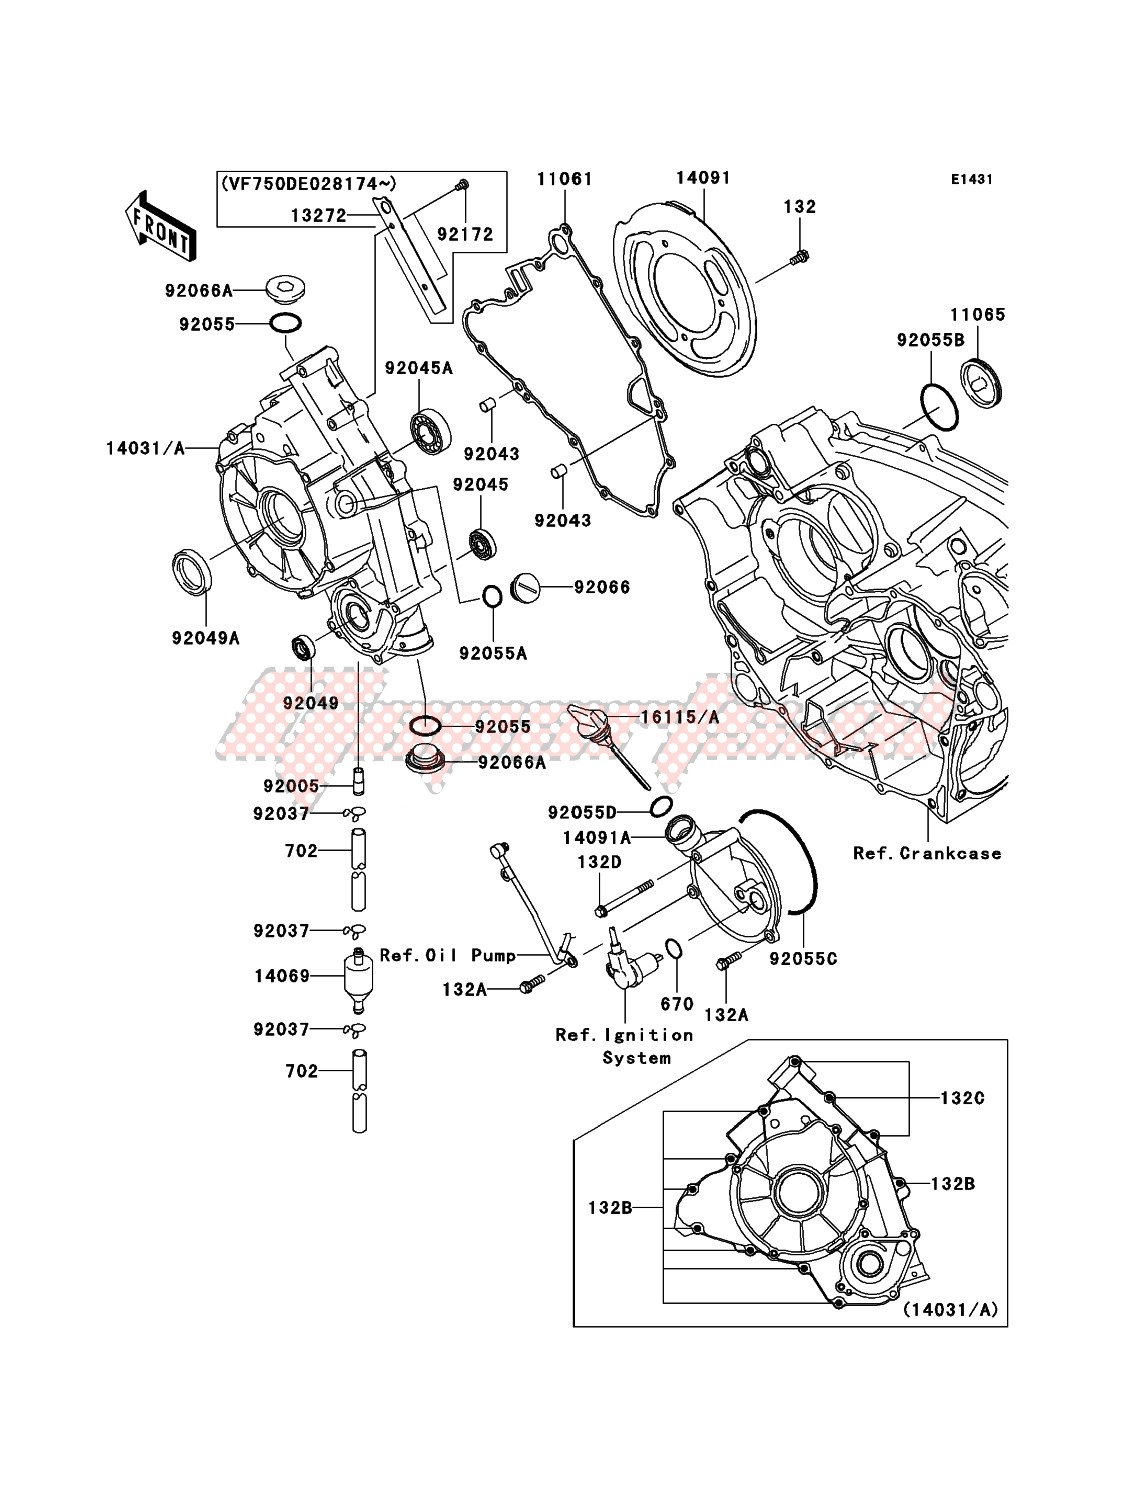 Engine Cover(s) image